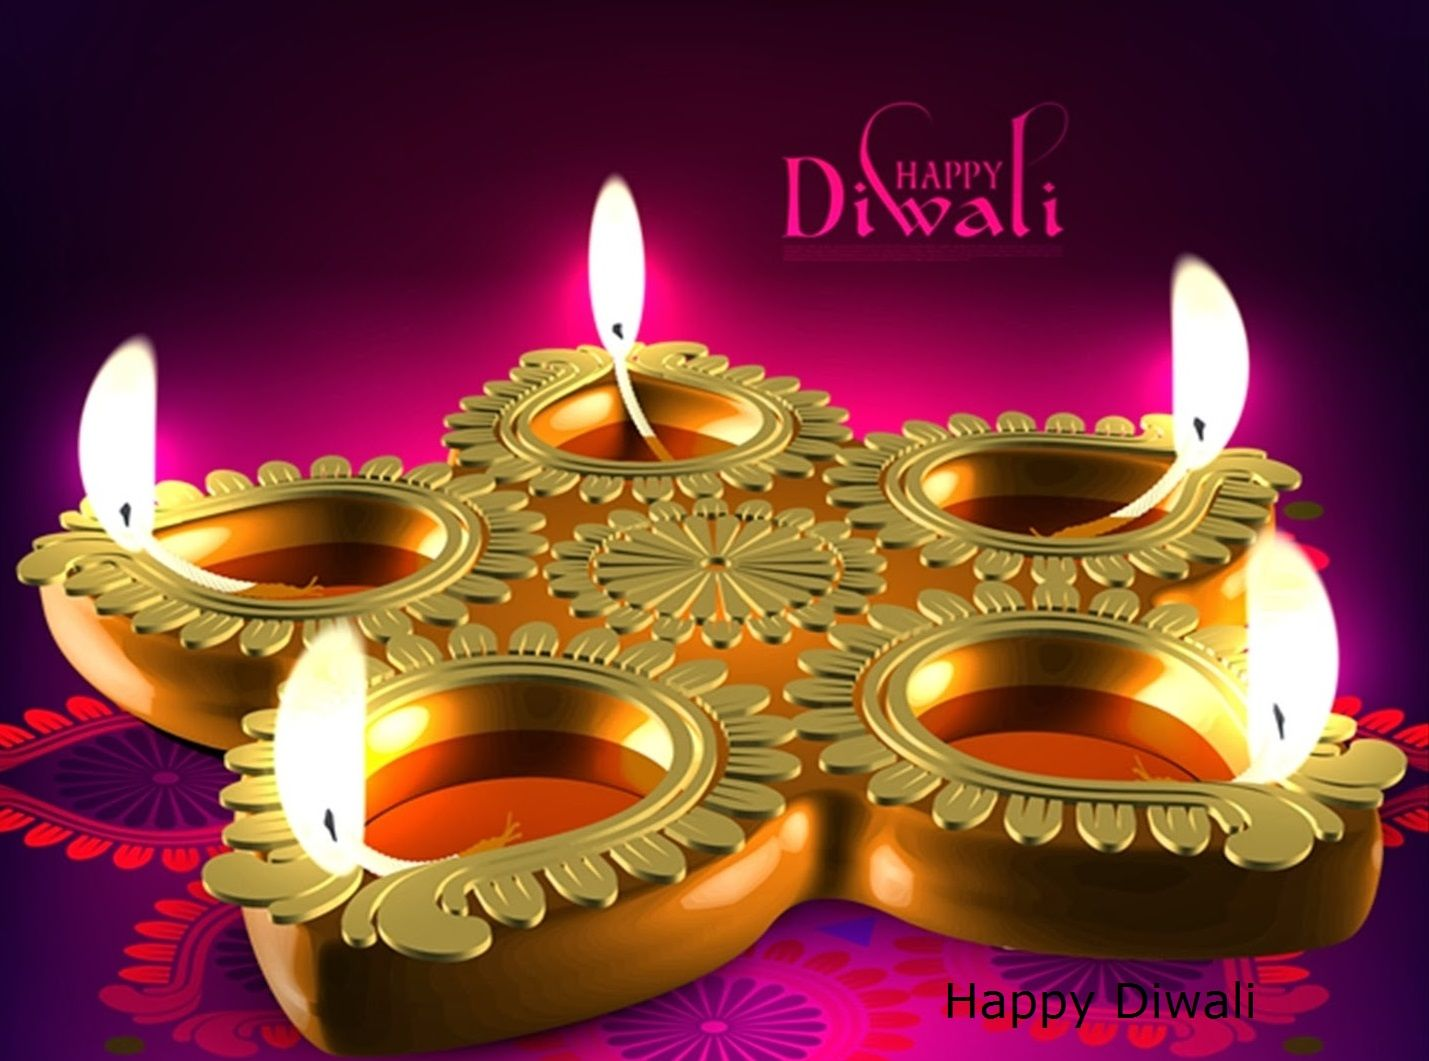 diwali essay by kids Contextual translation of essay diwali for kid into tamil human translations with examples: கட்டுரை தீபாவளி, lotus flower essay, thuimai india essay.